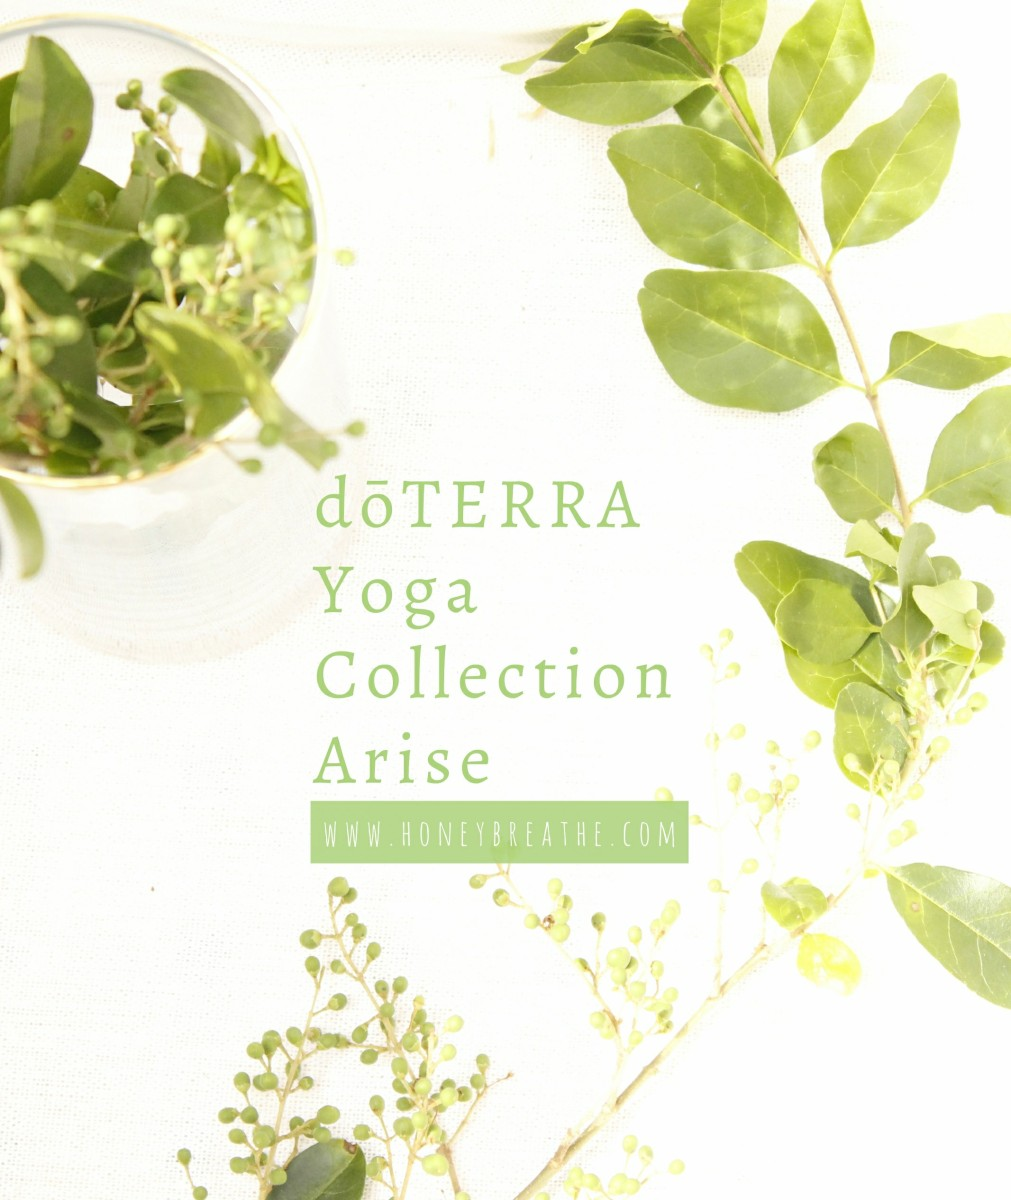 The dōTERRA Yoga Collection: Arise